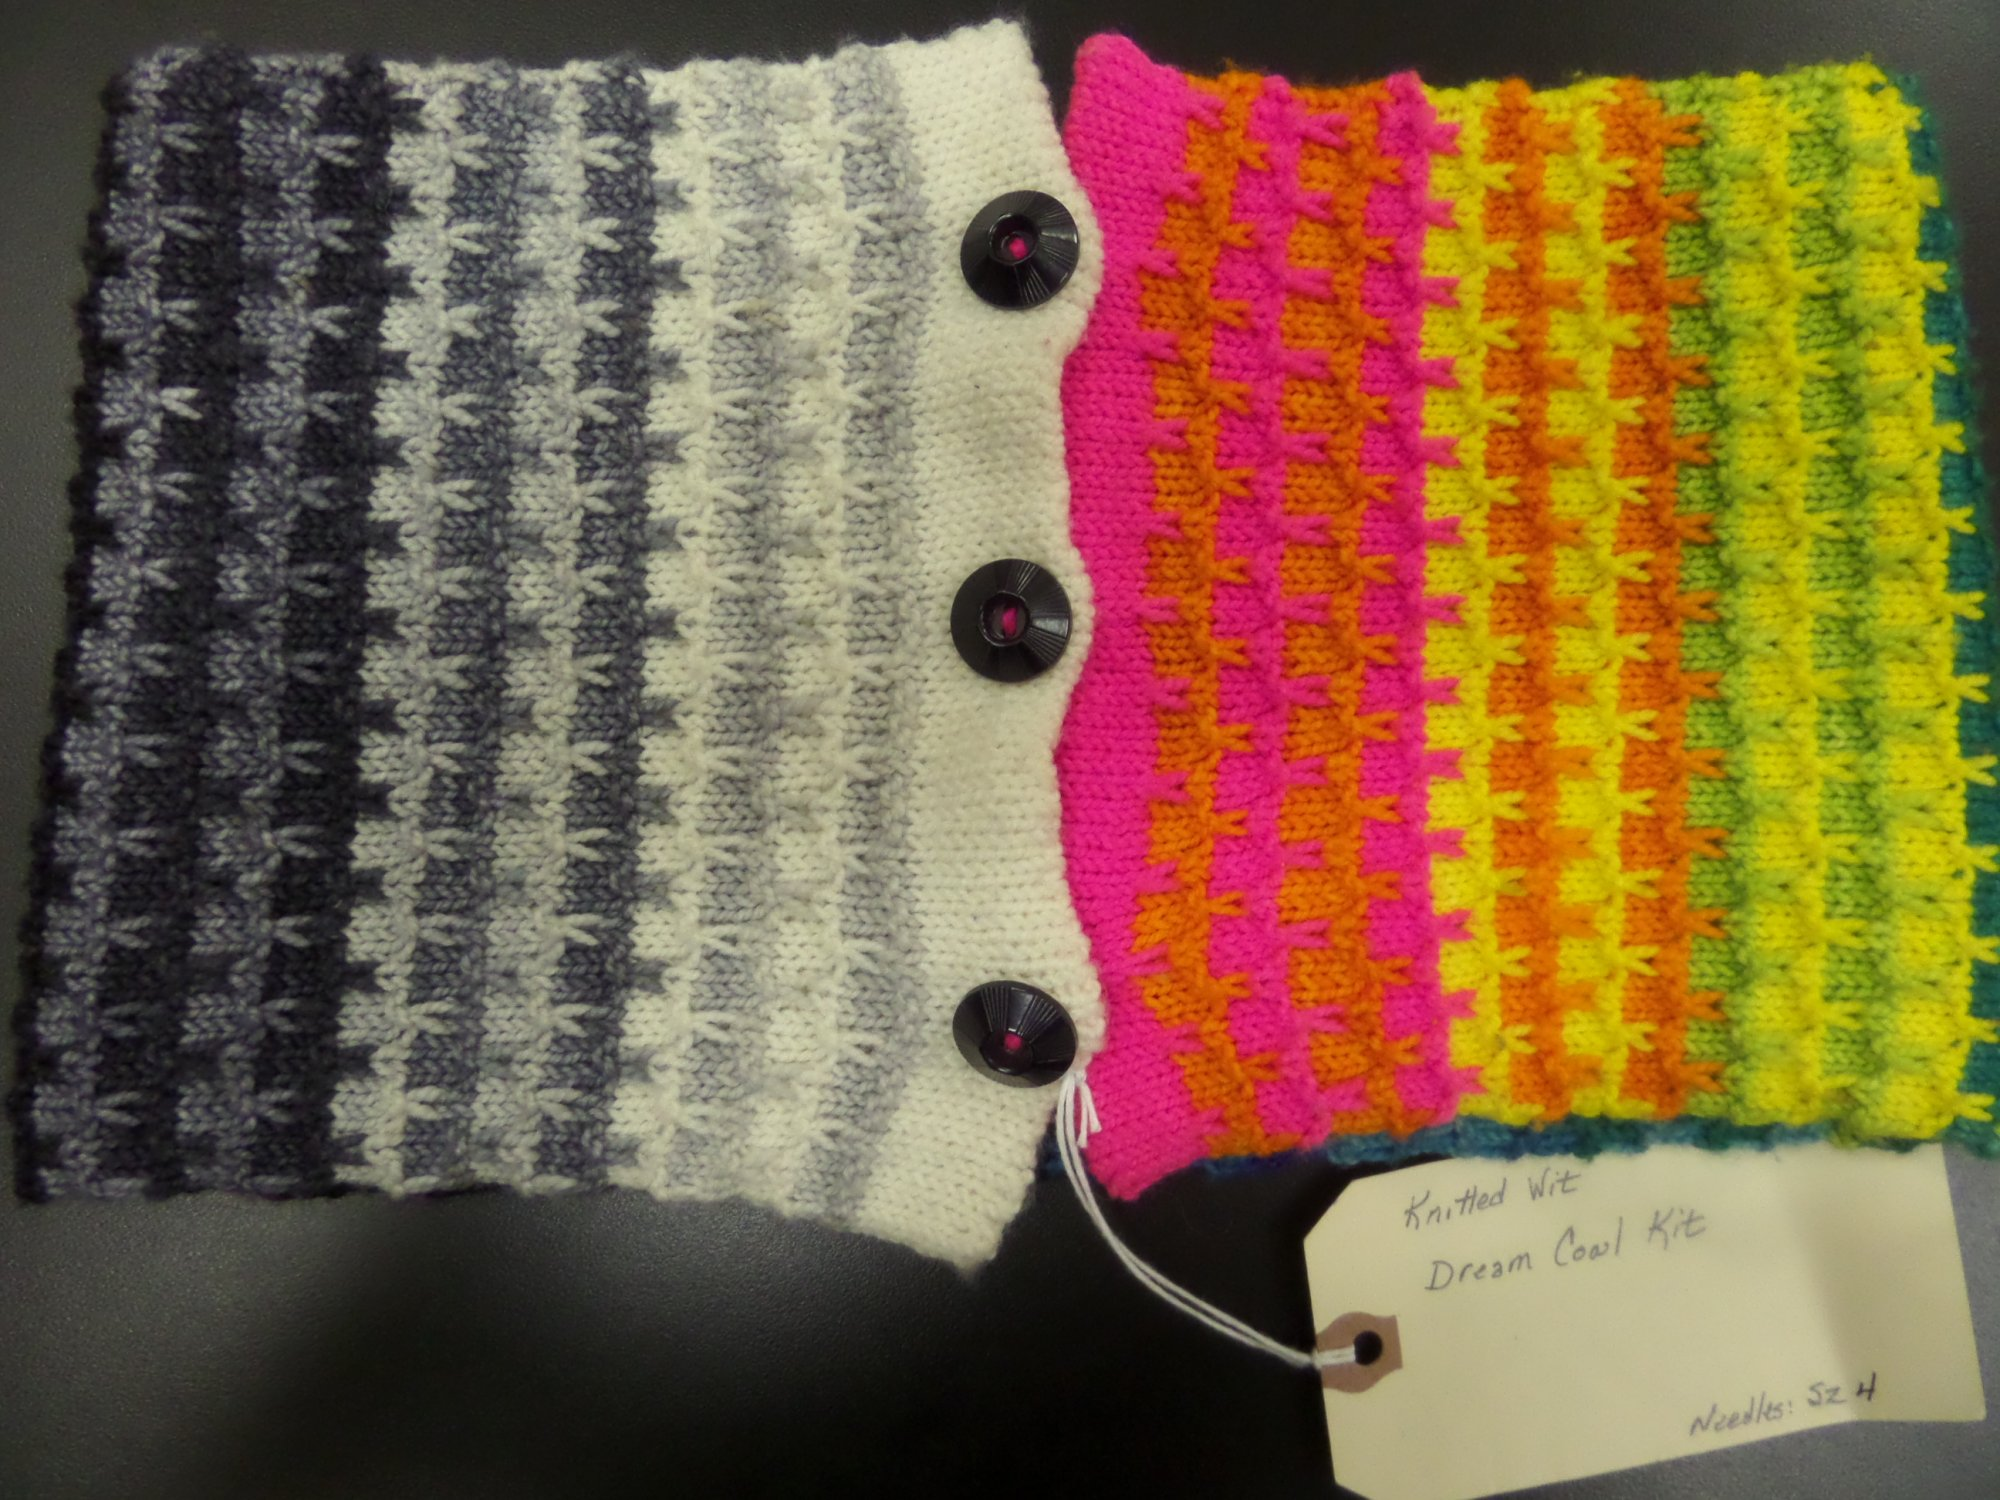 Amazing Technicolor Dream Cowl sample from Knitted Wit